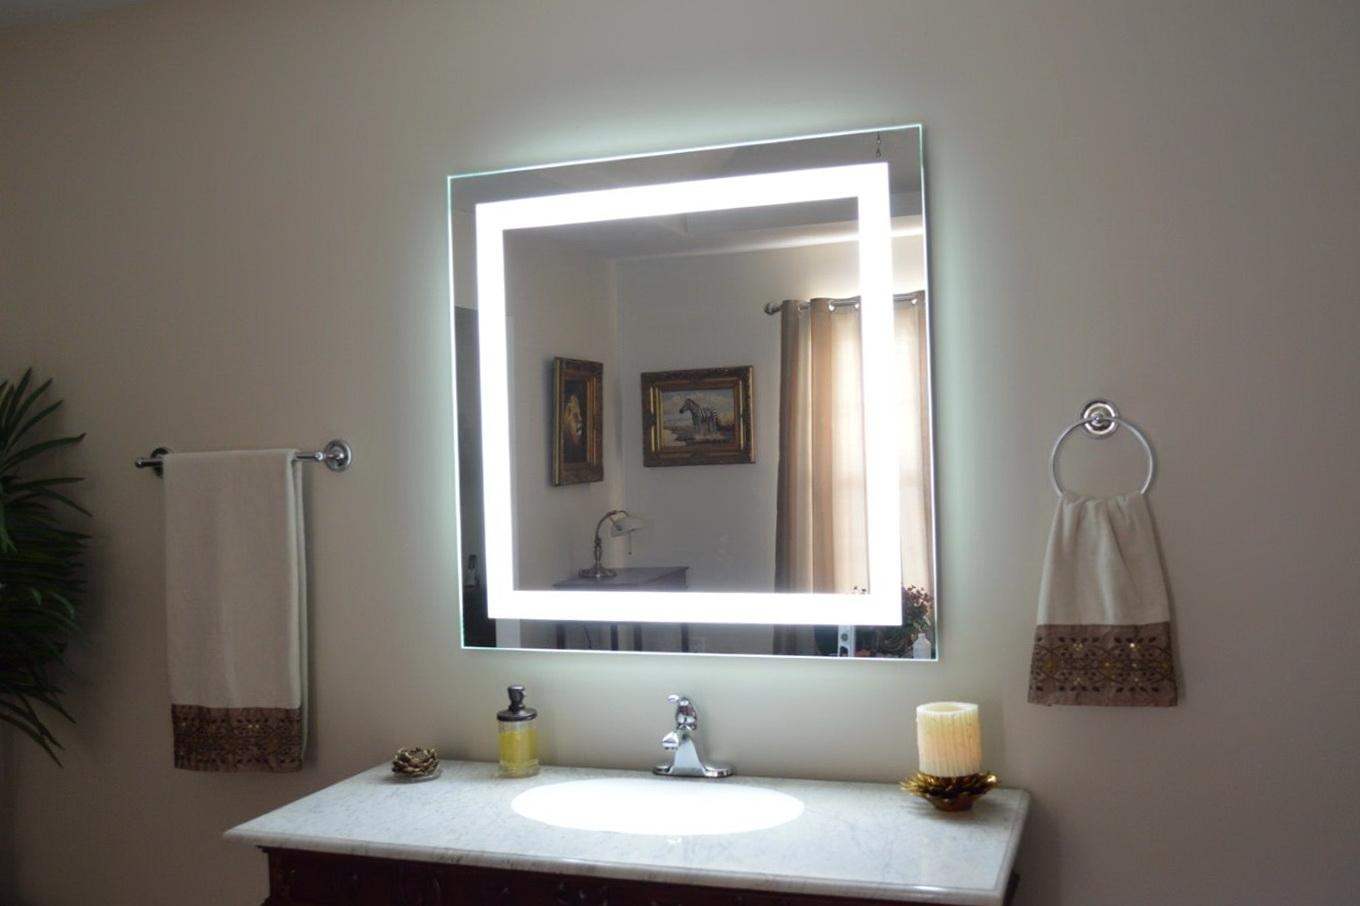 Ikea Bathroom Wall Mirror With Lights Square – Decofurnish Intended For Lights For Bathroom Mirrors (Image 14 of 20)